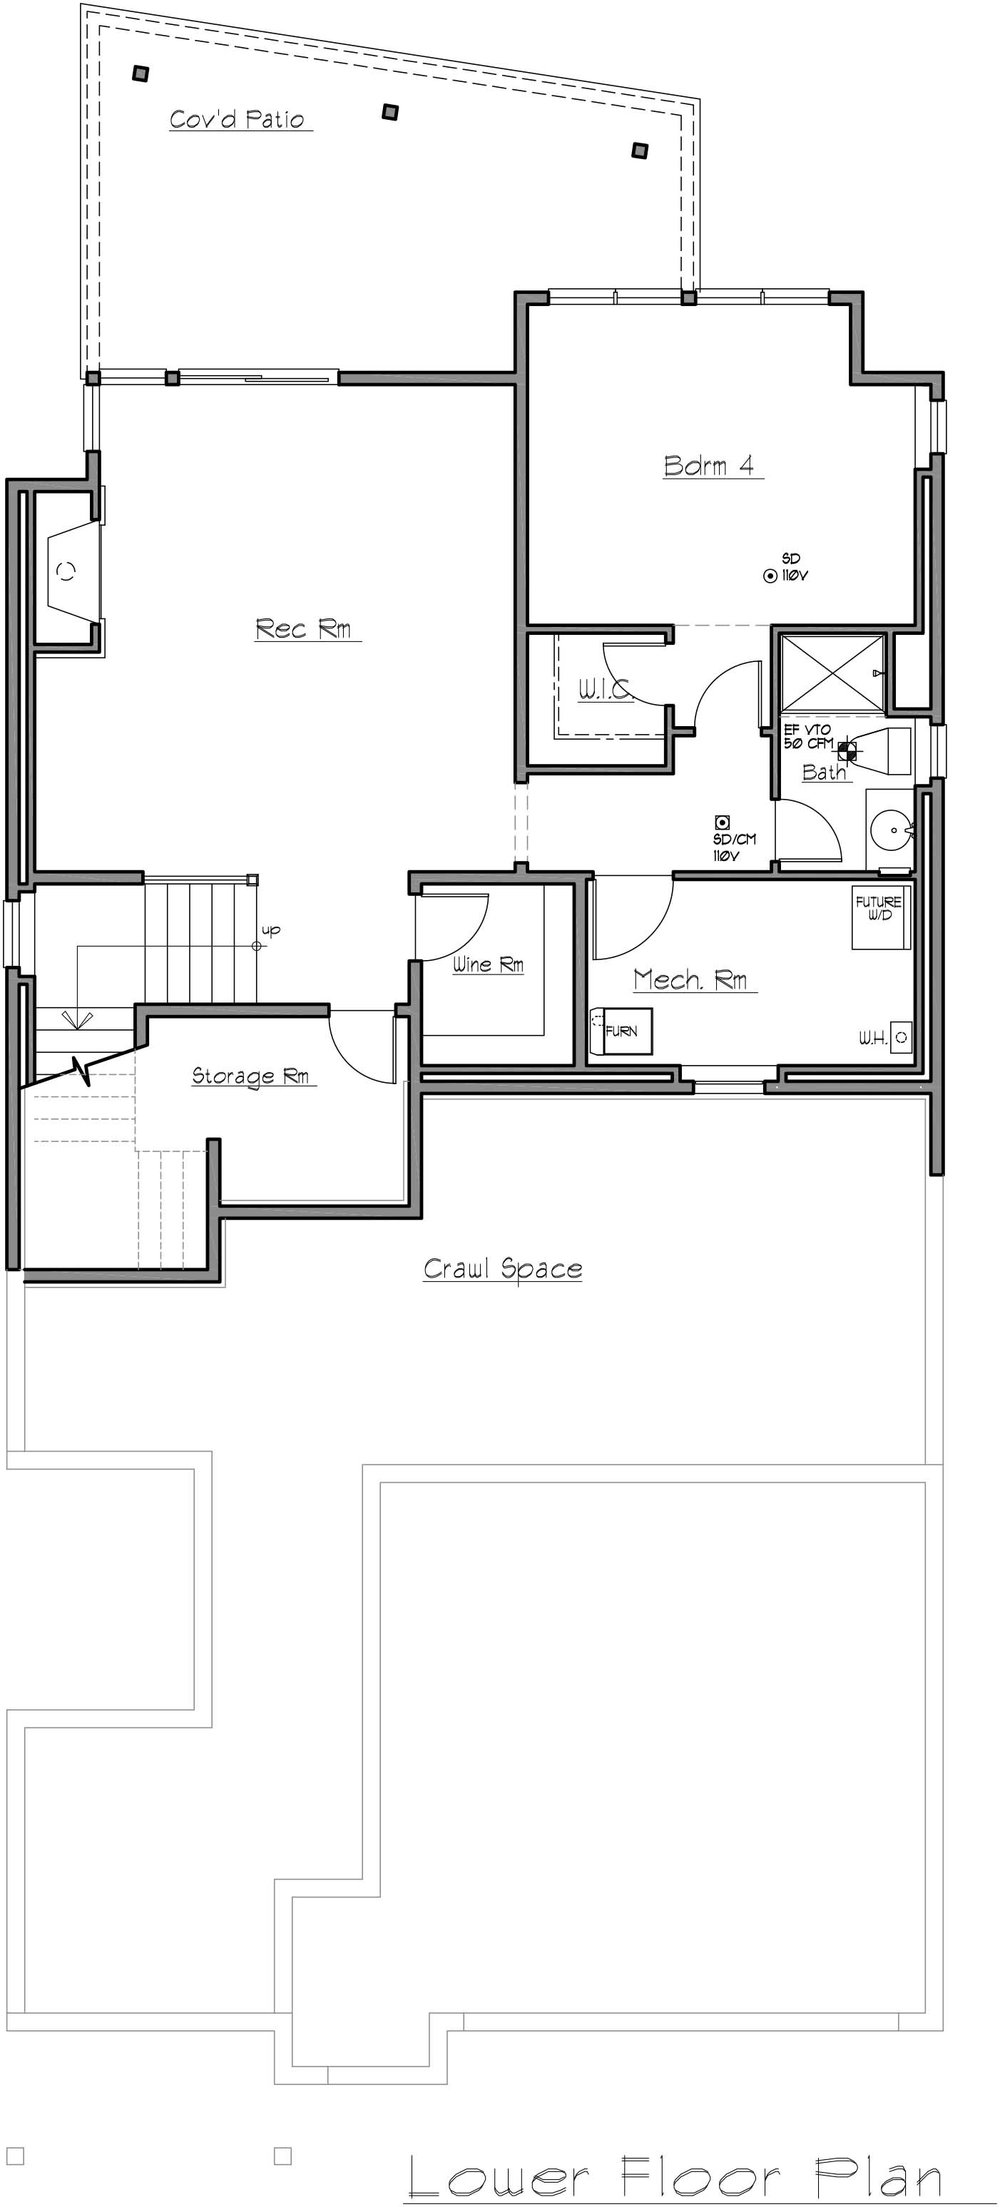 5604-Plan-REVISED-l1D50EEF.jpg